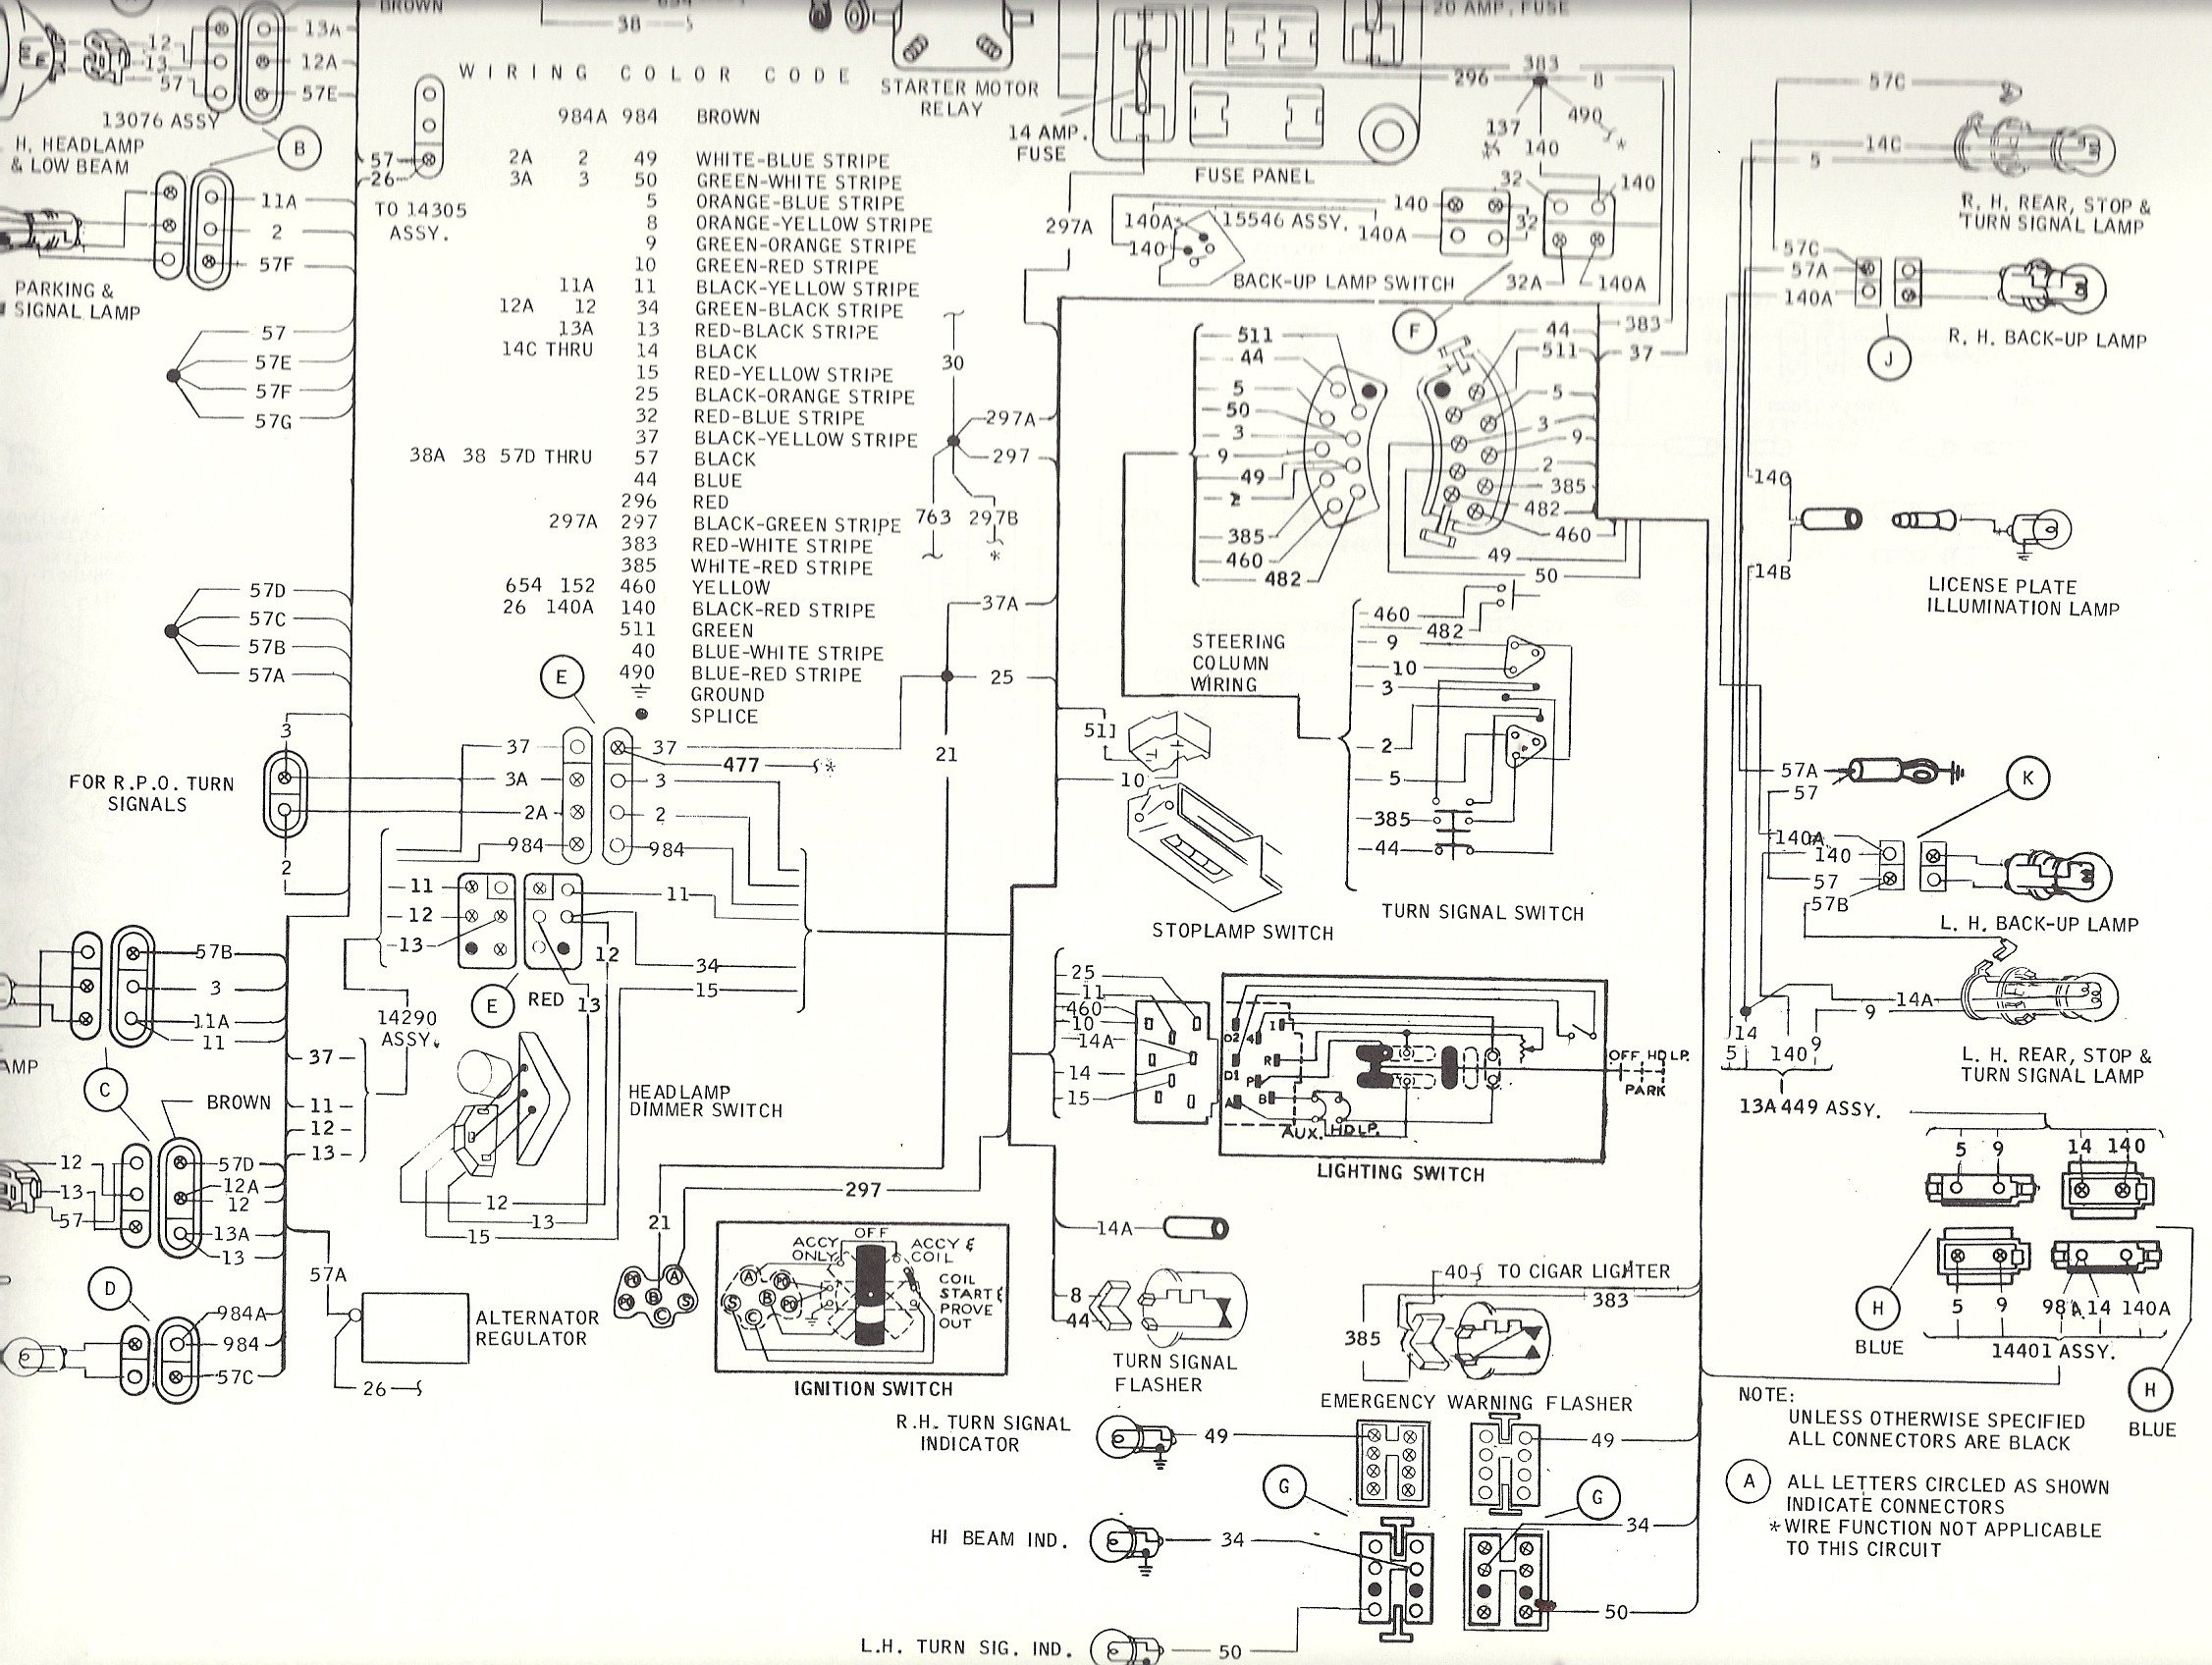 1966 Nova Turn Signal Wiring Diagram | Wiring Diagram Liries  Nova Steering Column Wiring Diagram on 1973 nova steering column diagram, 1970 nova steering column diagram, 1963 nova steering column diagram, 1964 nova steering column diagram, ford power steering diagram, 1969 nova steering column diagram, 1965 nova steering column diagram, 1968 nova steering column diagram, 1966 nova wiring diagram, 1971 nova steering column diagram, 1974 nova steering column diagram,